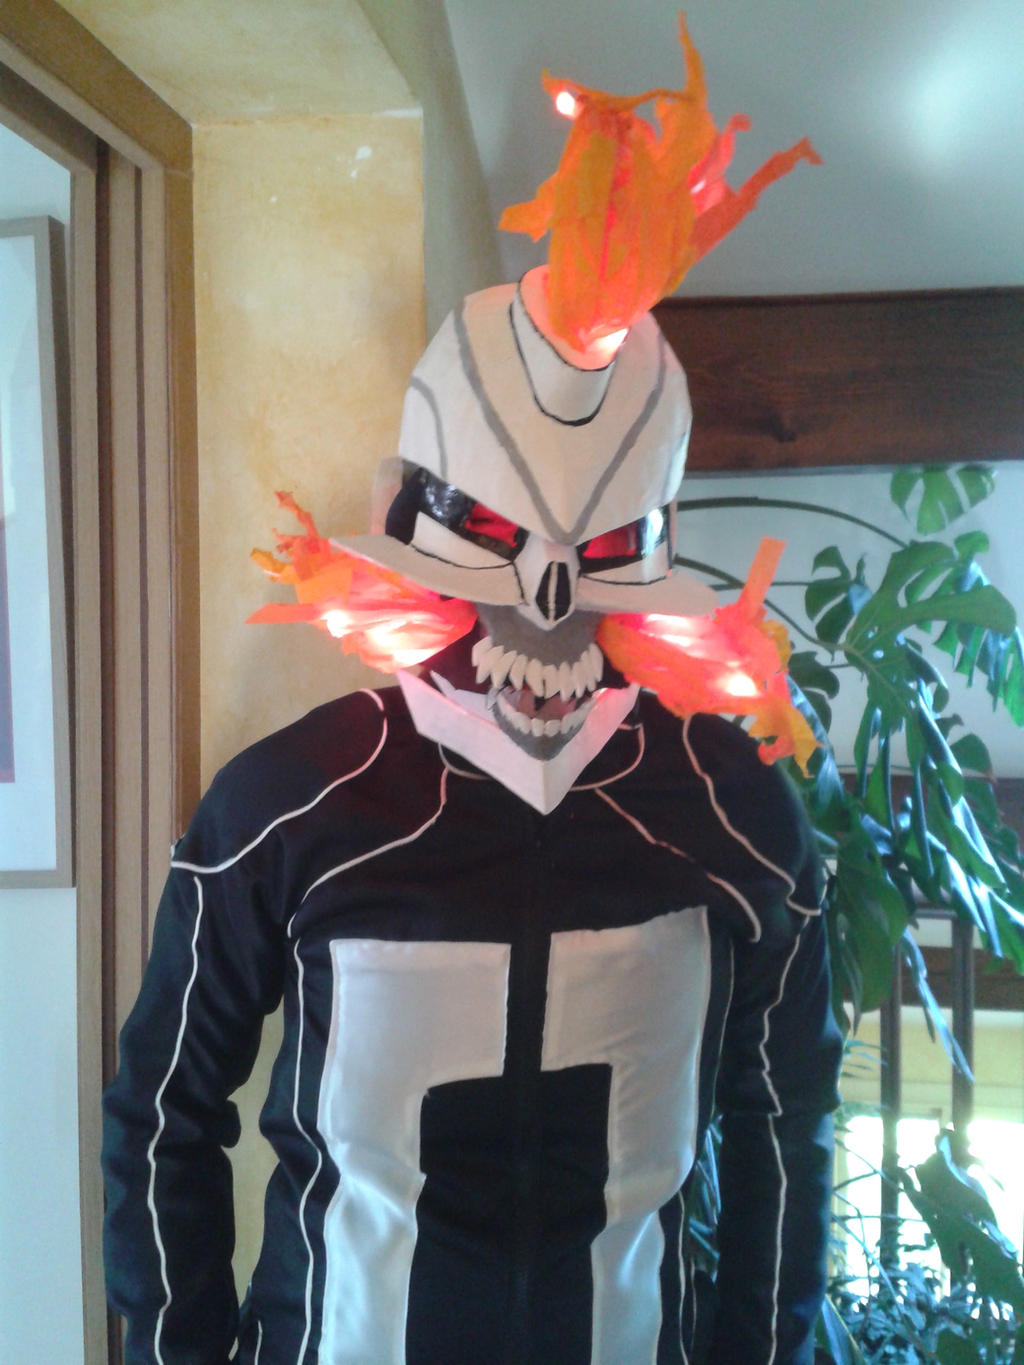 My All New Ghost Rider Cosplay 3 by CeramicHearted on DeviantArt